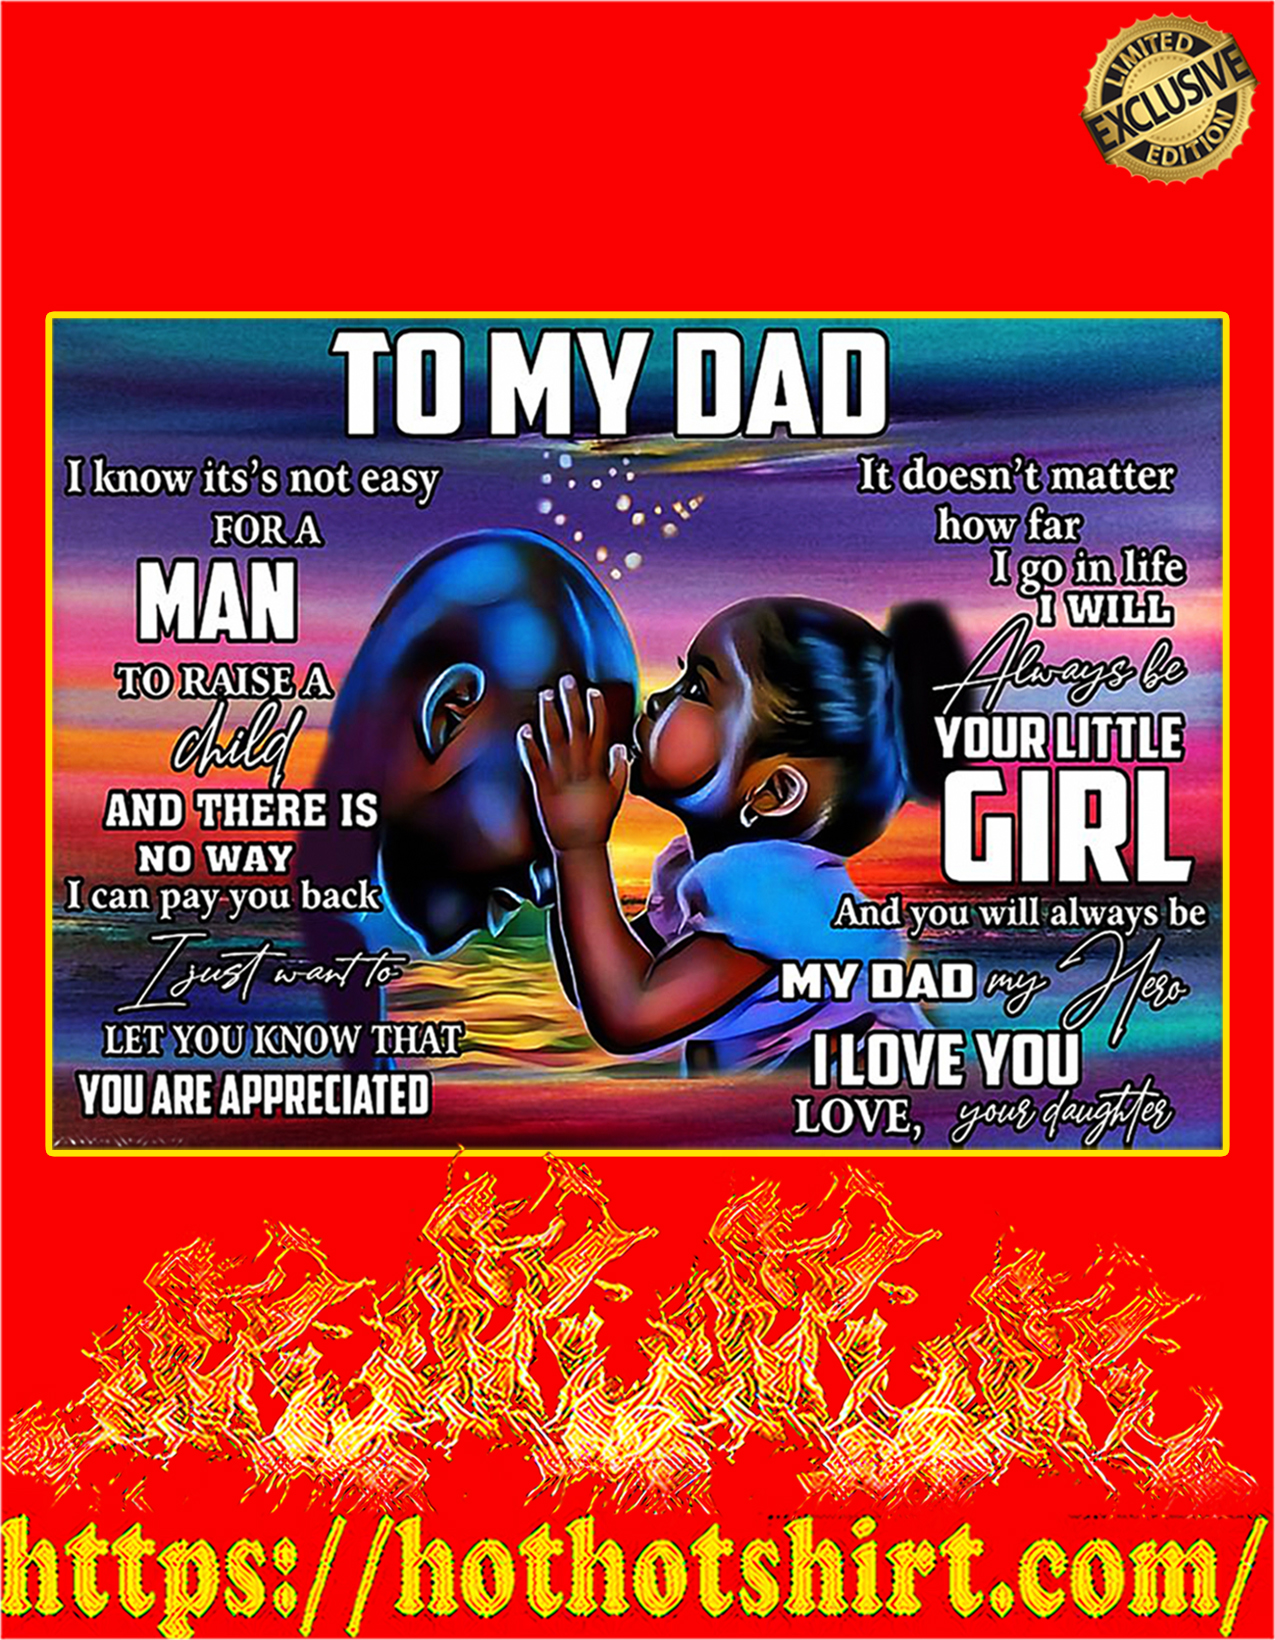 African To my dad your daughter poster - A2